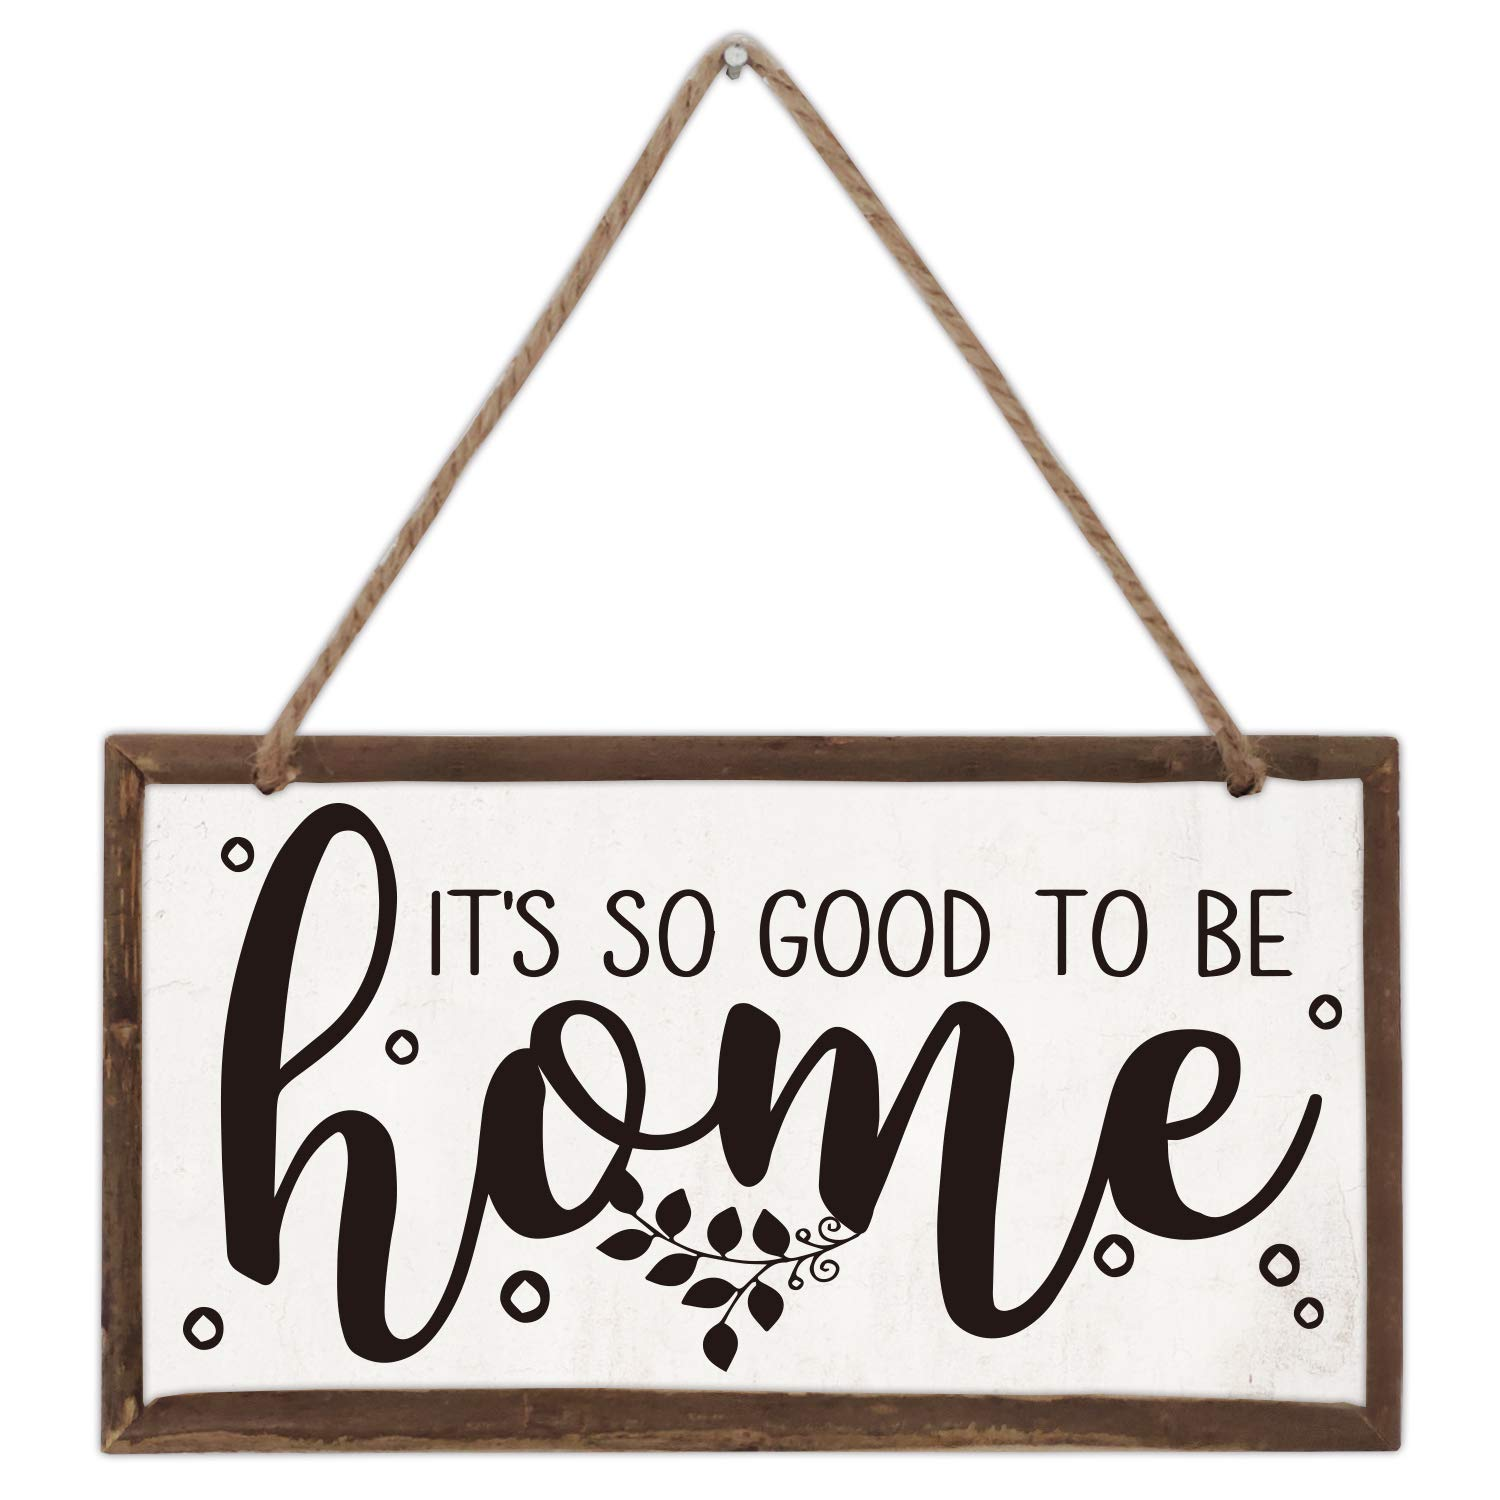 akeke It's So Good to Be Home Wood Farmhouse Frame Hanging Wall Art Sign Plaque Decor 12 x 6 Inch